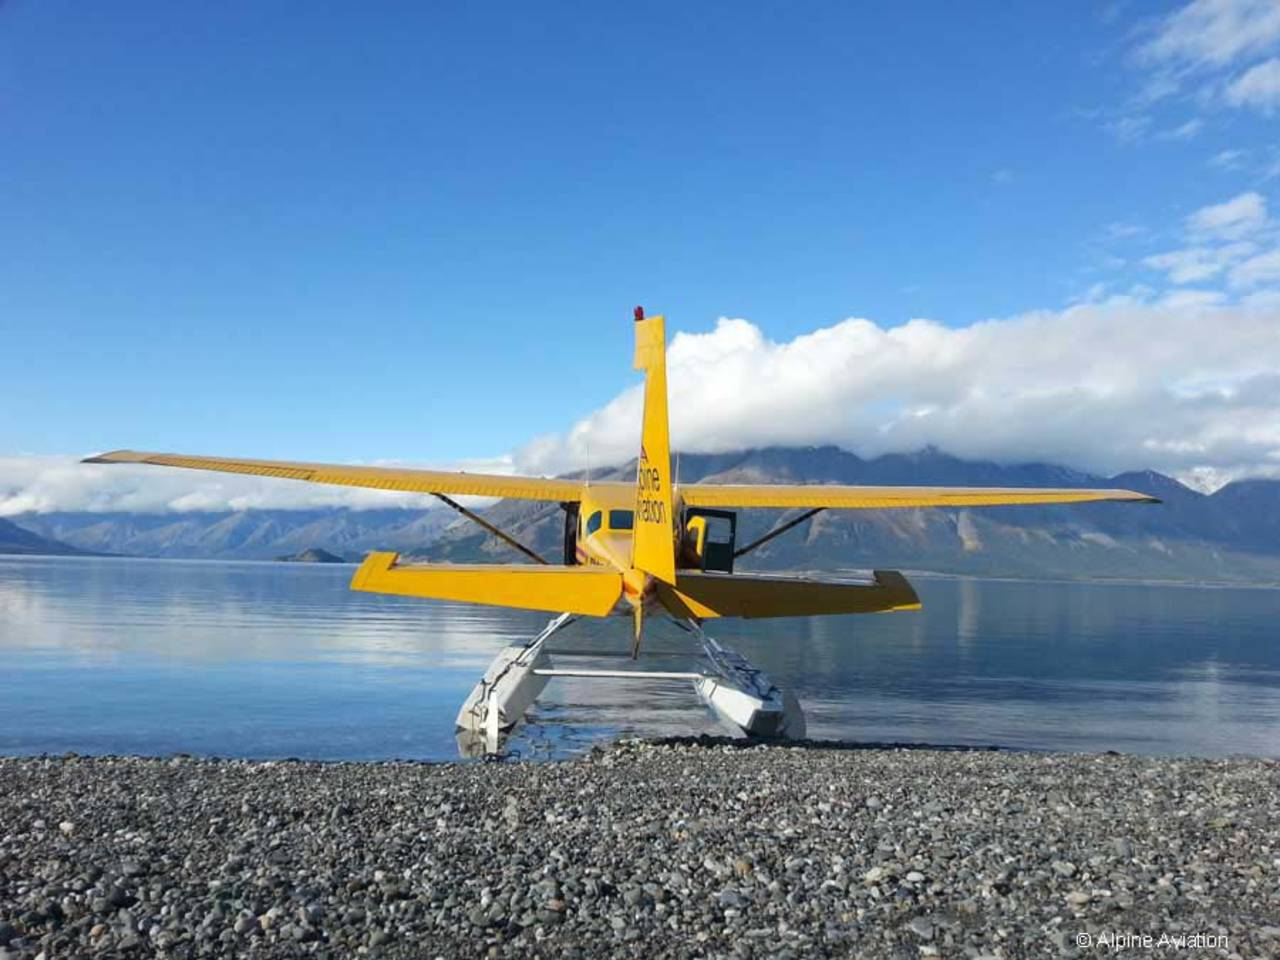 Enjoy your own float plane adventure!